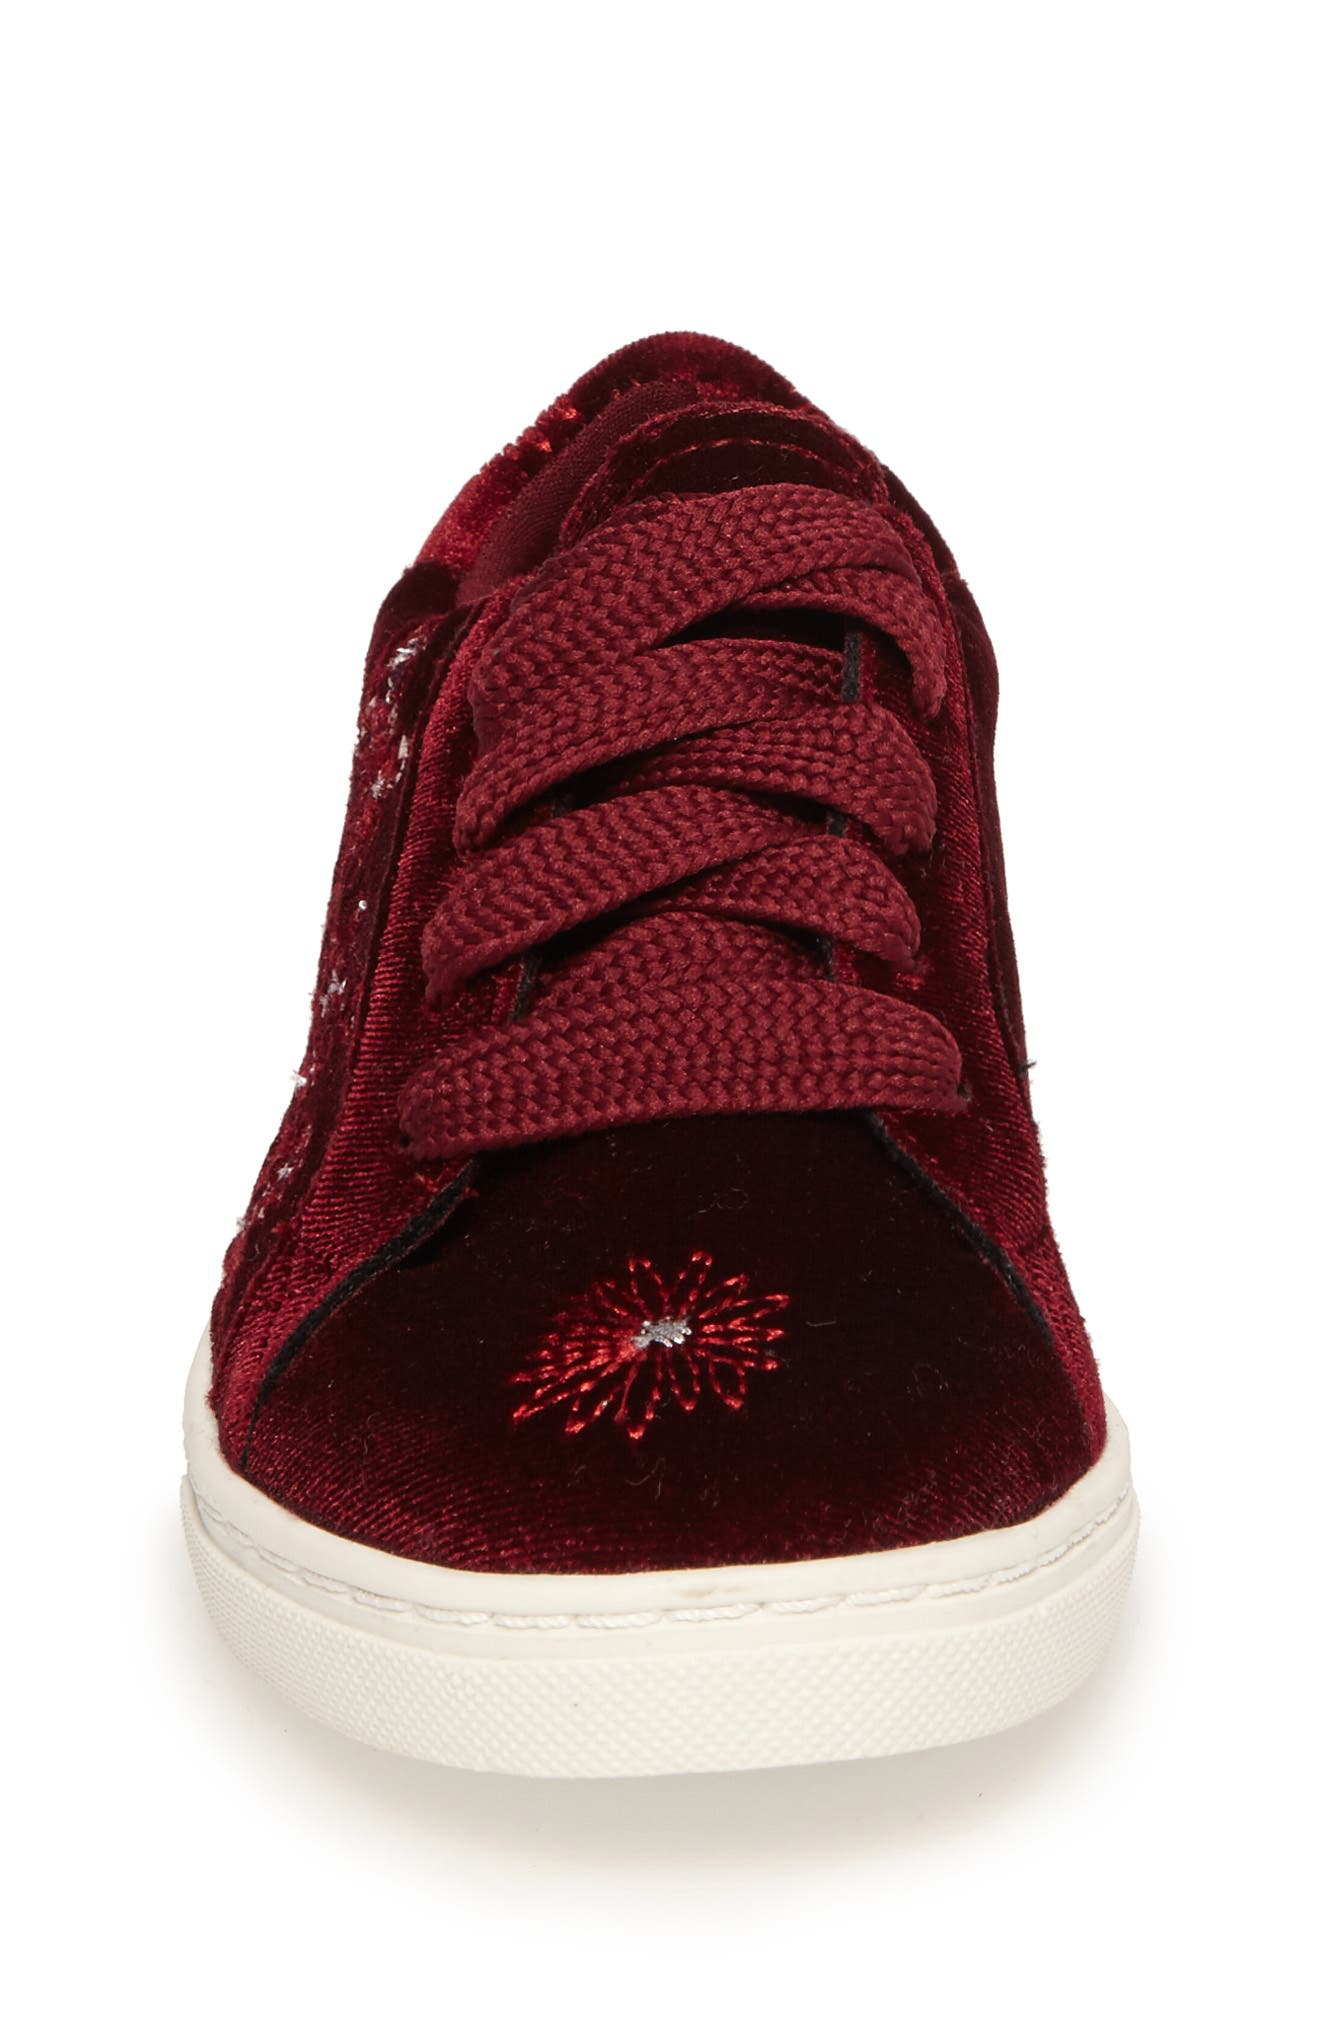 Alternate Image 4  - Dolce Vita Zolly Floral Embroidered Sneaker (Toddler, Little Kid & Big Kid)